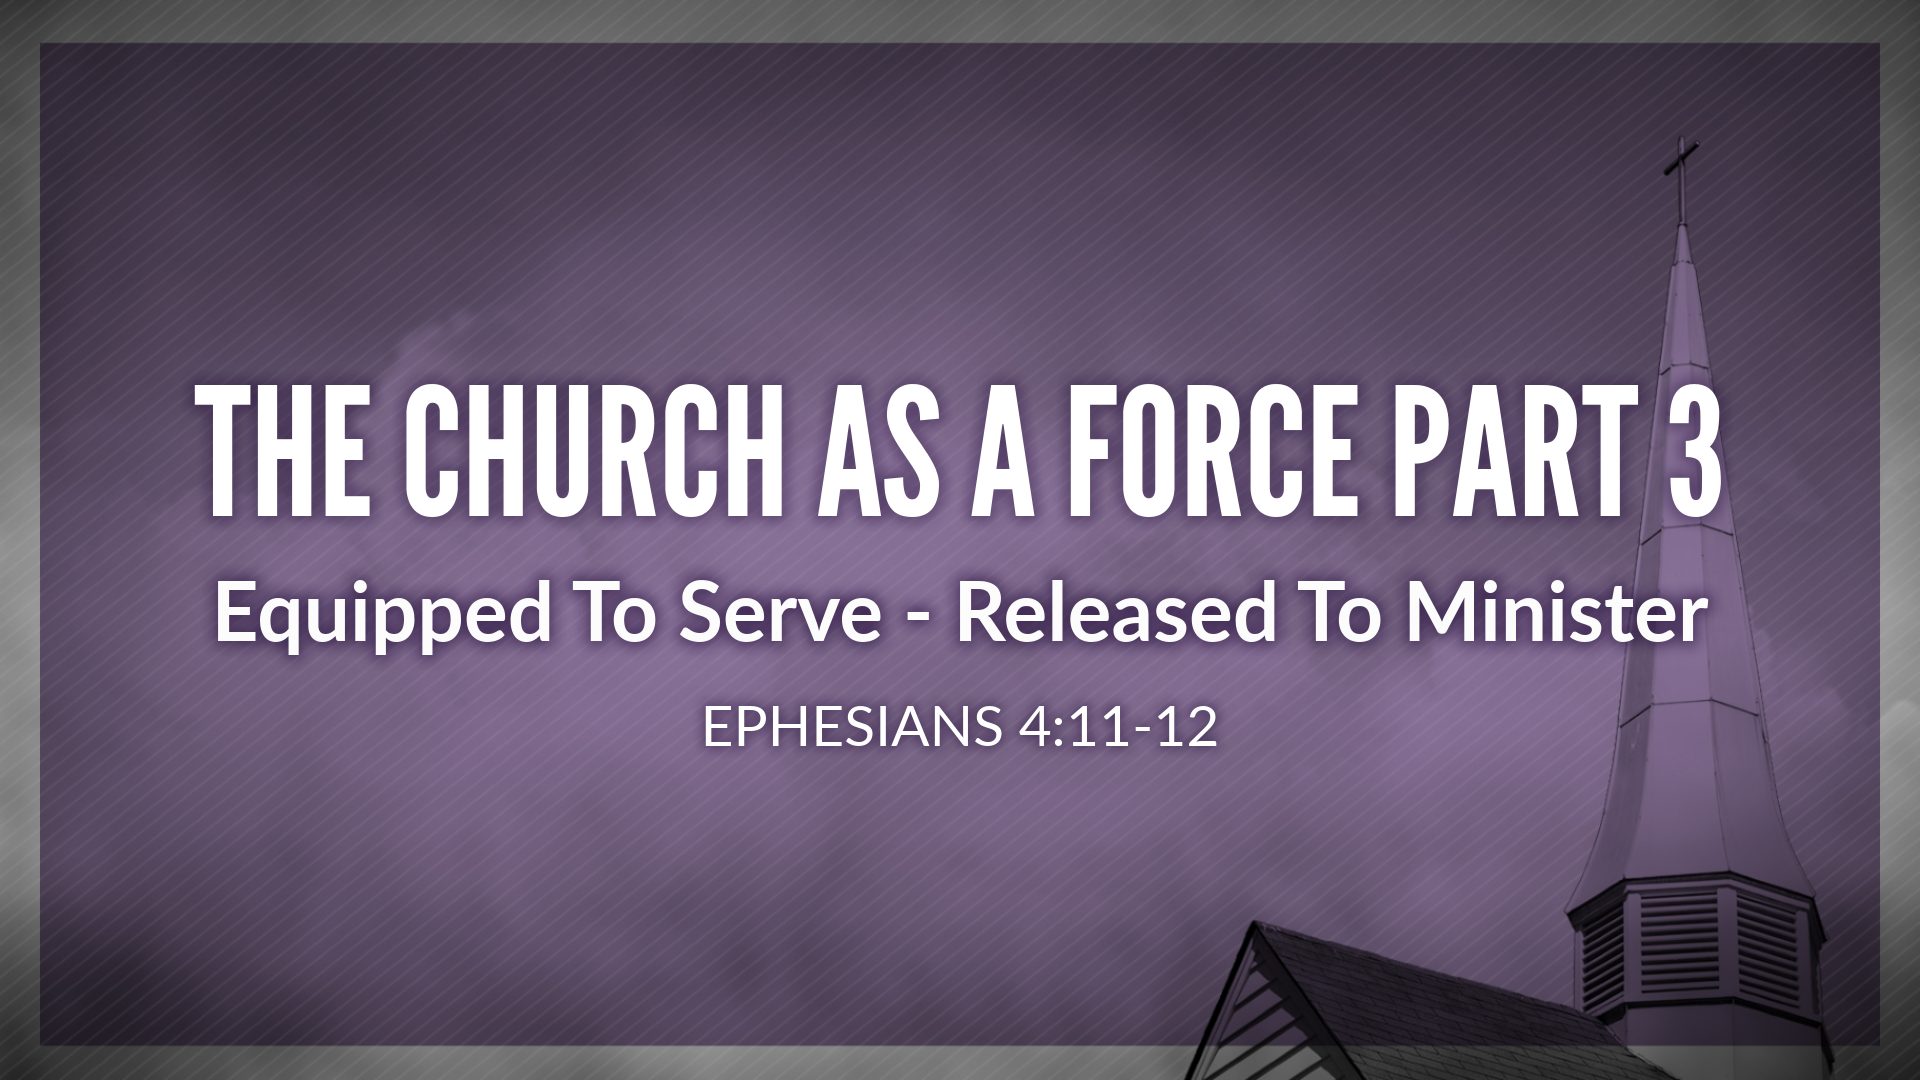 Equipped To Serve - Released To Minister